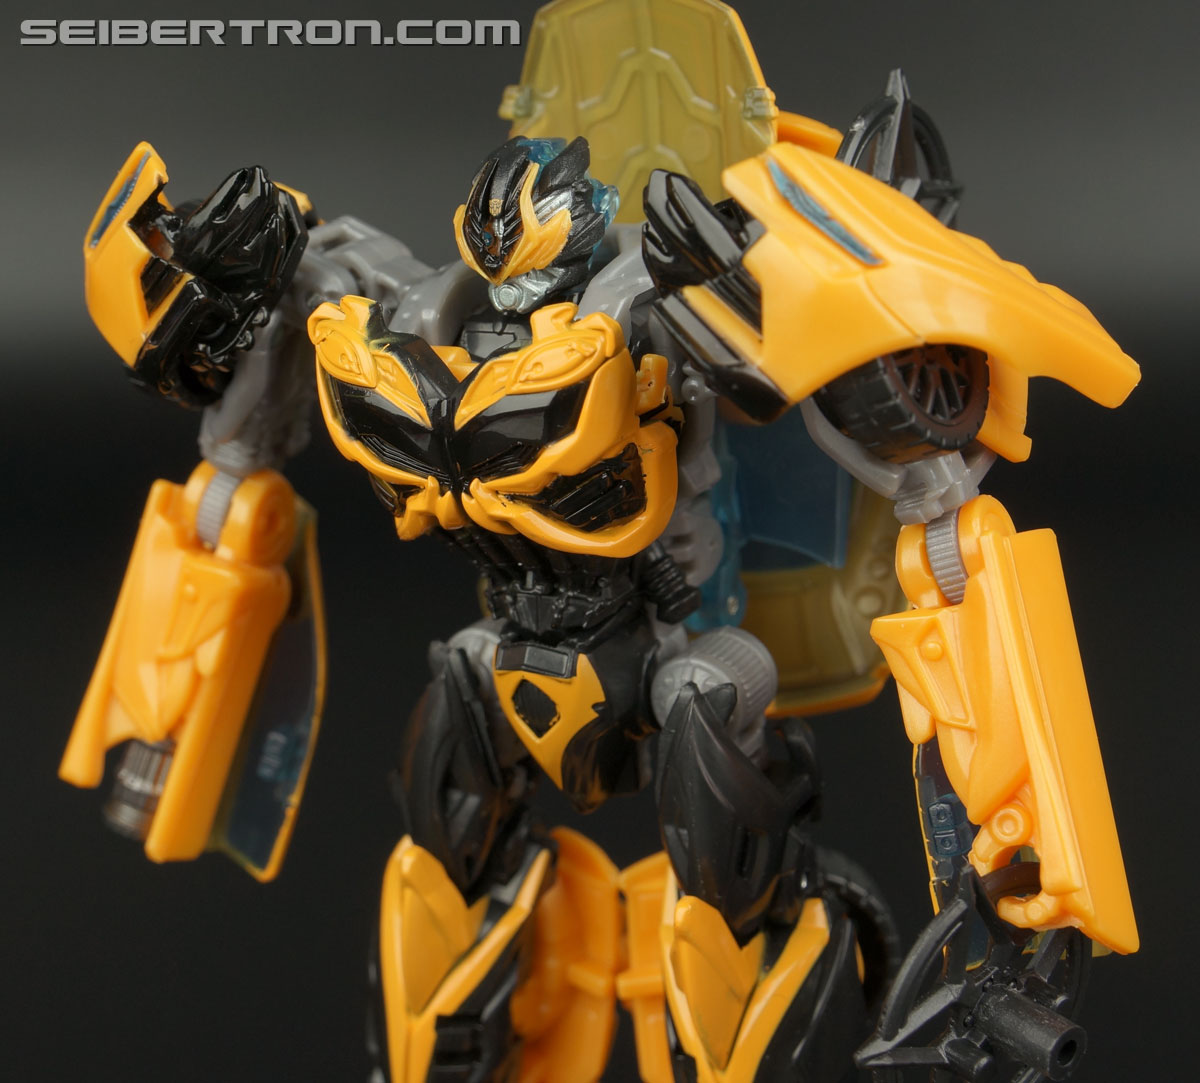 Transformers Age of Extinction: Generations Bumblebee (Image #91 of 190)